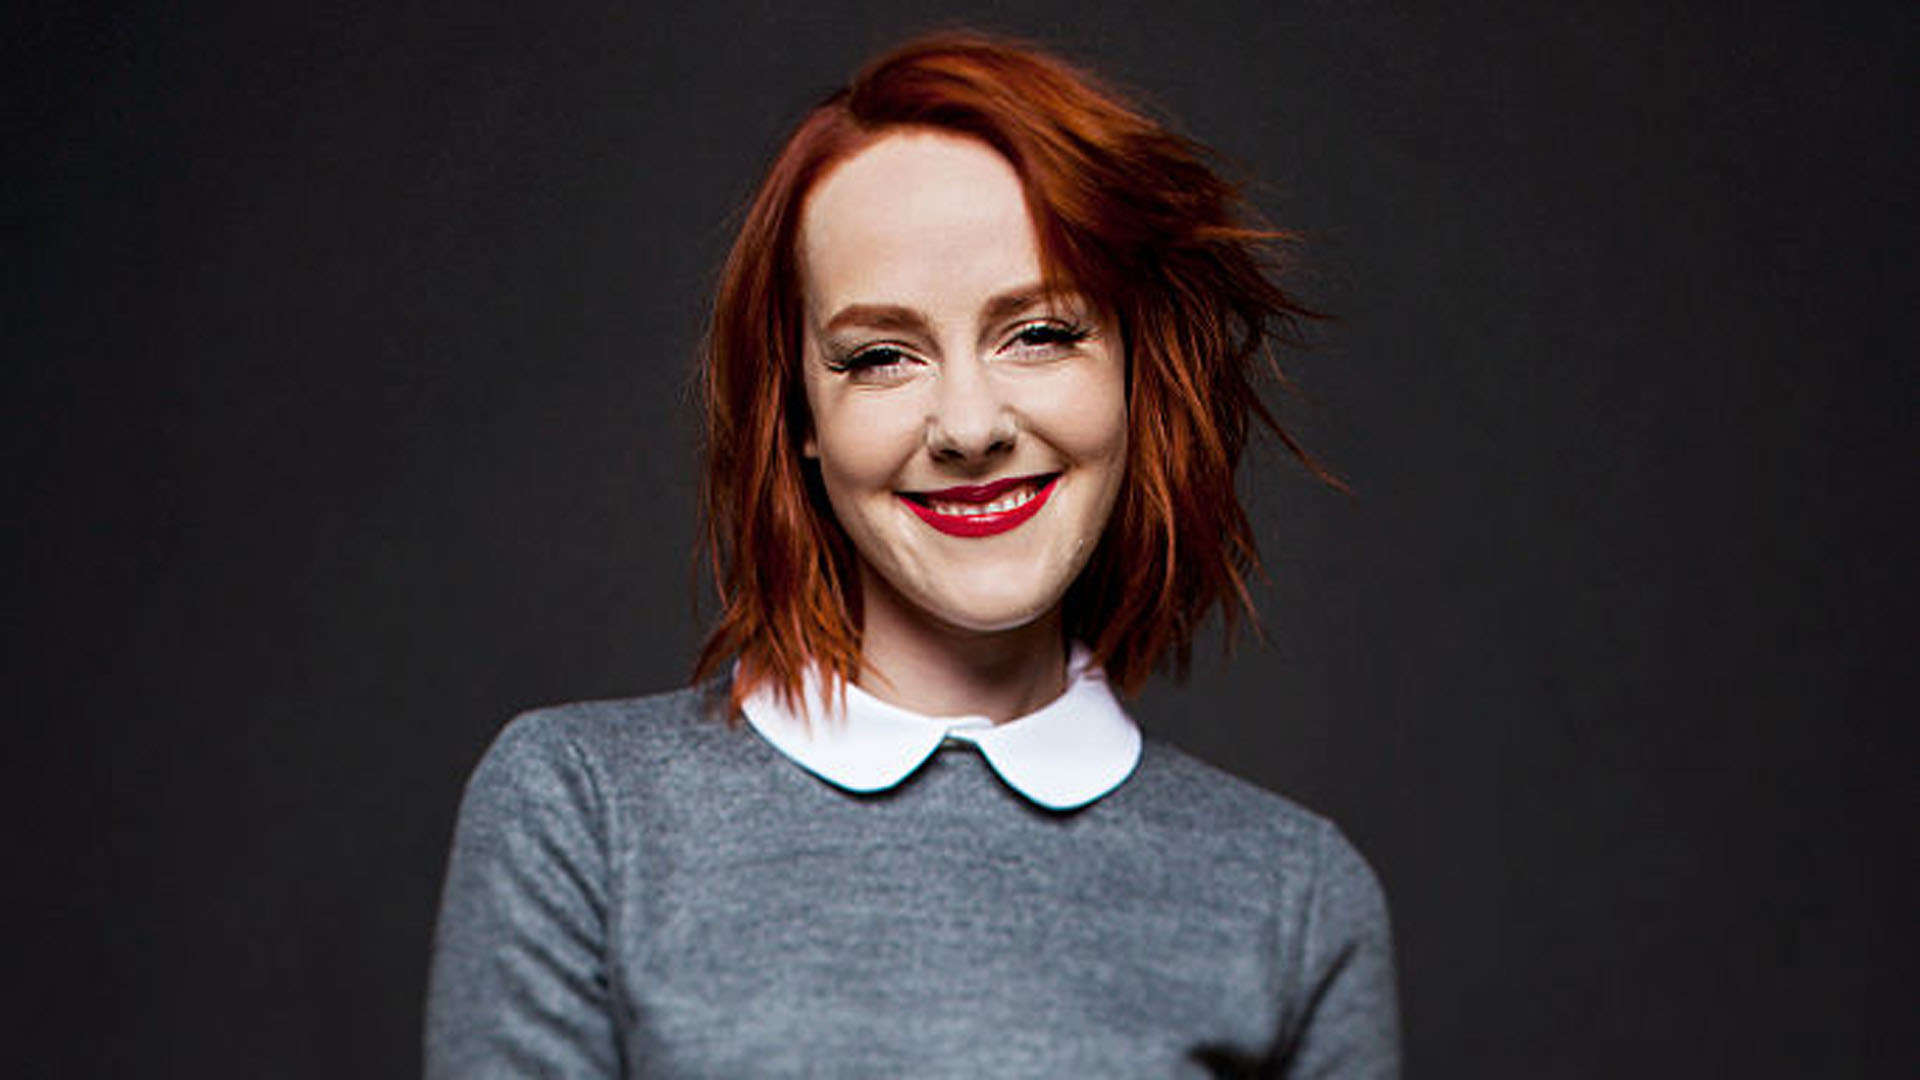 Jena Malone Backgrounds, Compatible - PC, Mobile, Gadgets  1920x1080 px